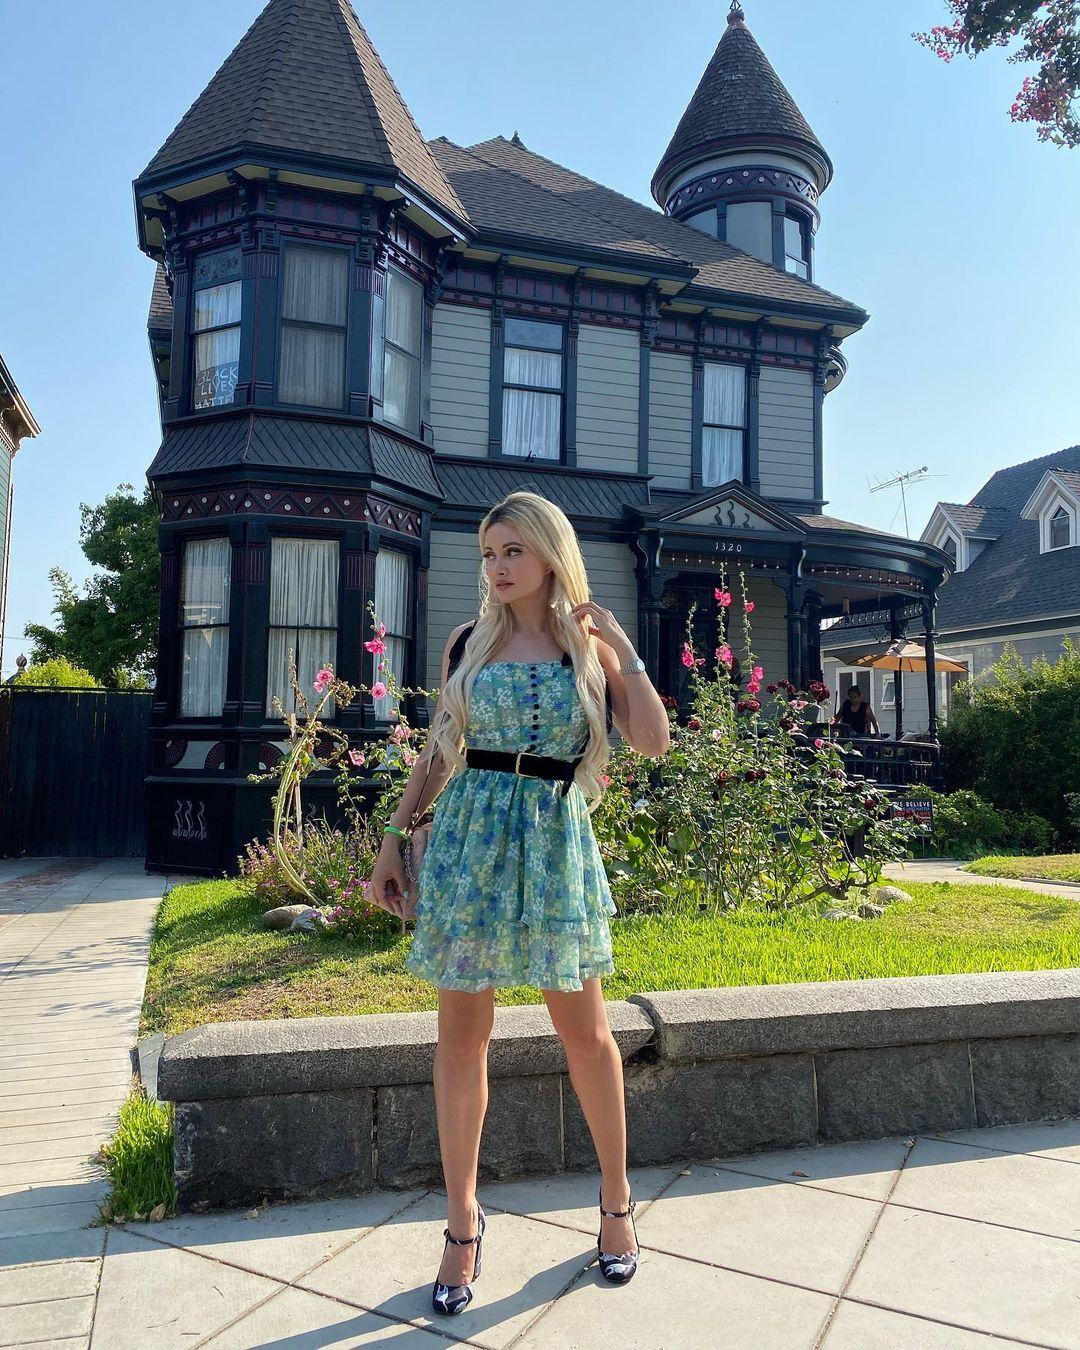 Former Playmate Claims The Playboy Mansion Is Haunted